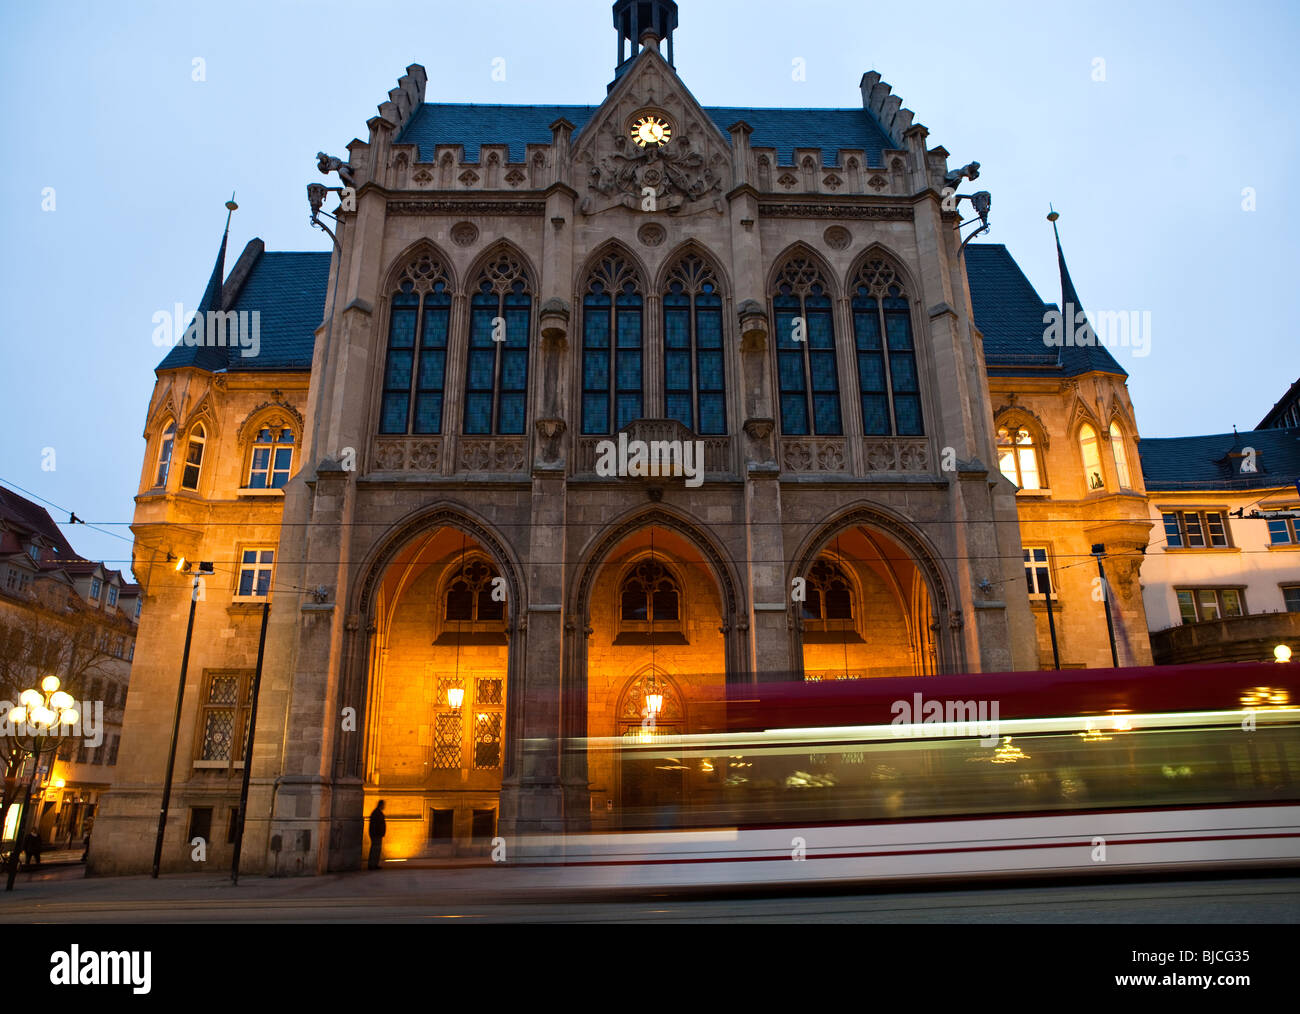 Erfurt Town hall in the evening with a tram passing by. (Long exposure) - Stock Image